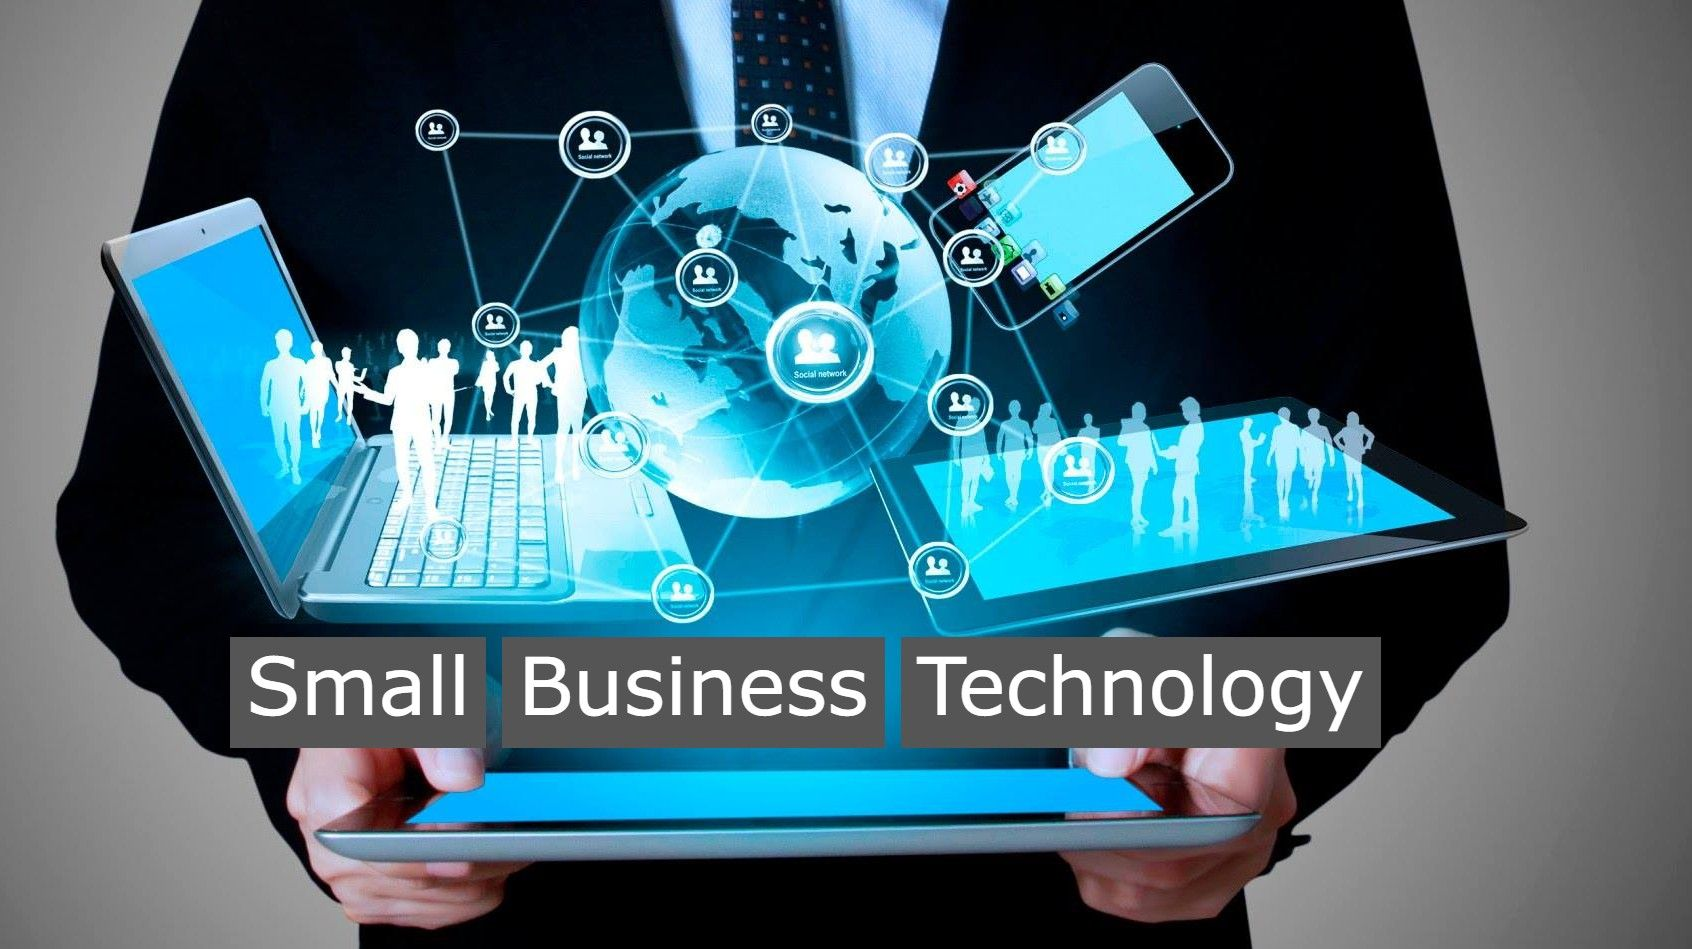 Top Small Business Technology Trends For 2020 Nogentech Blog For Online Tech Marketing Tips Gadgets Reviews Business Technology Digital Marketing Business Growth